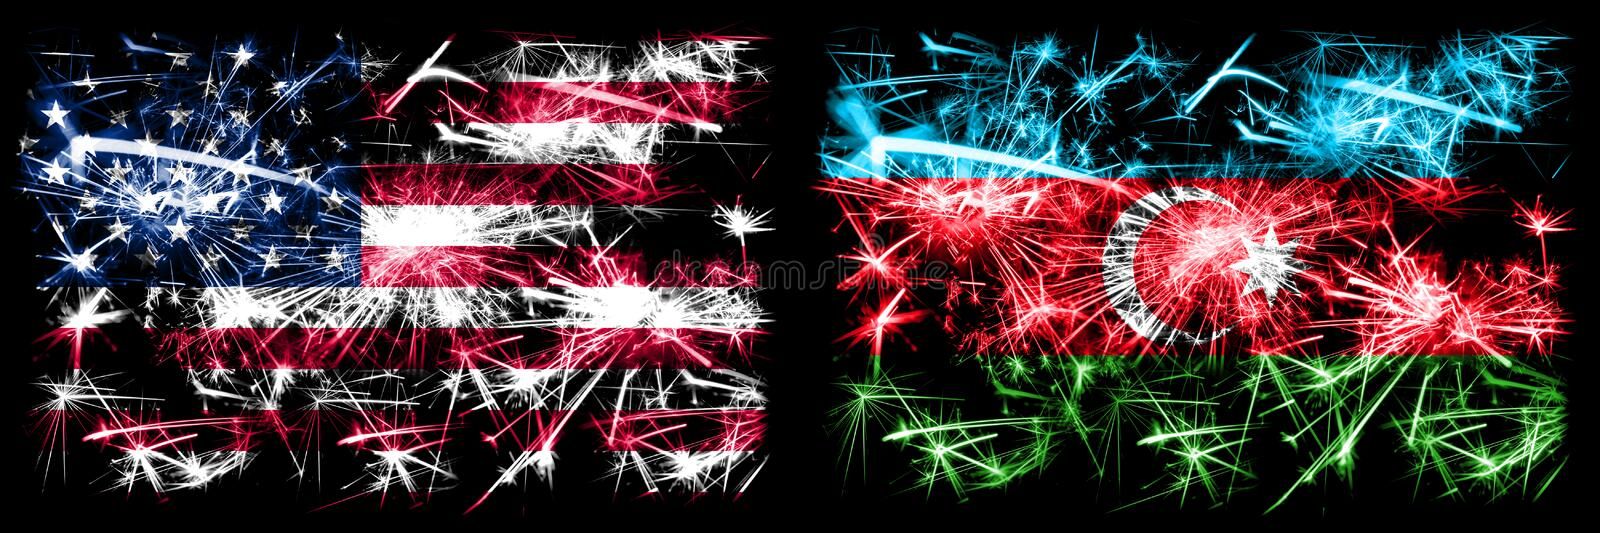 United States of America, USA vs Azerbaijan, Azerbaijani New Year celebration sparkling fireworks flags concept background. Combination of two abstract states royalty free stock images